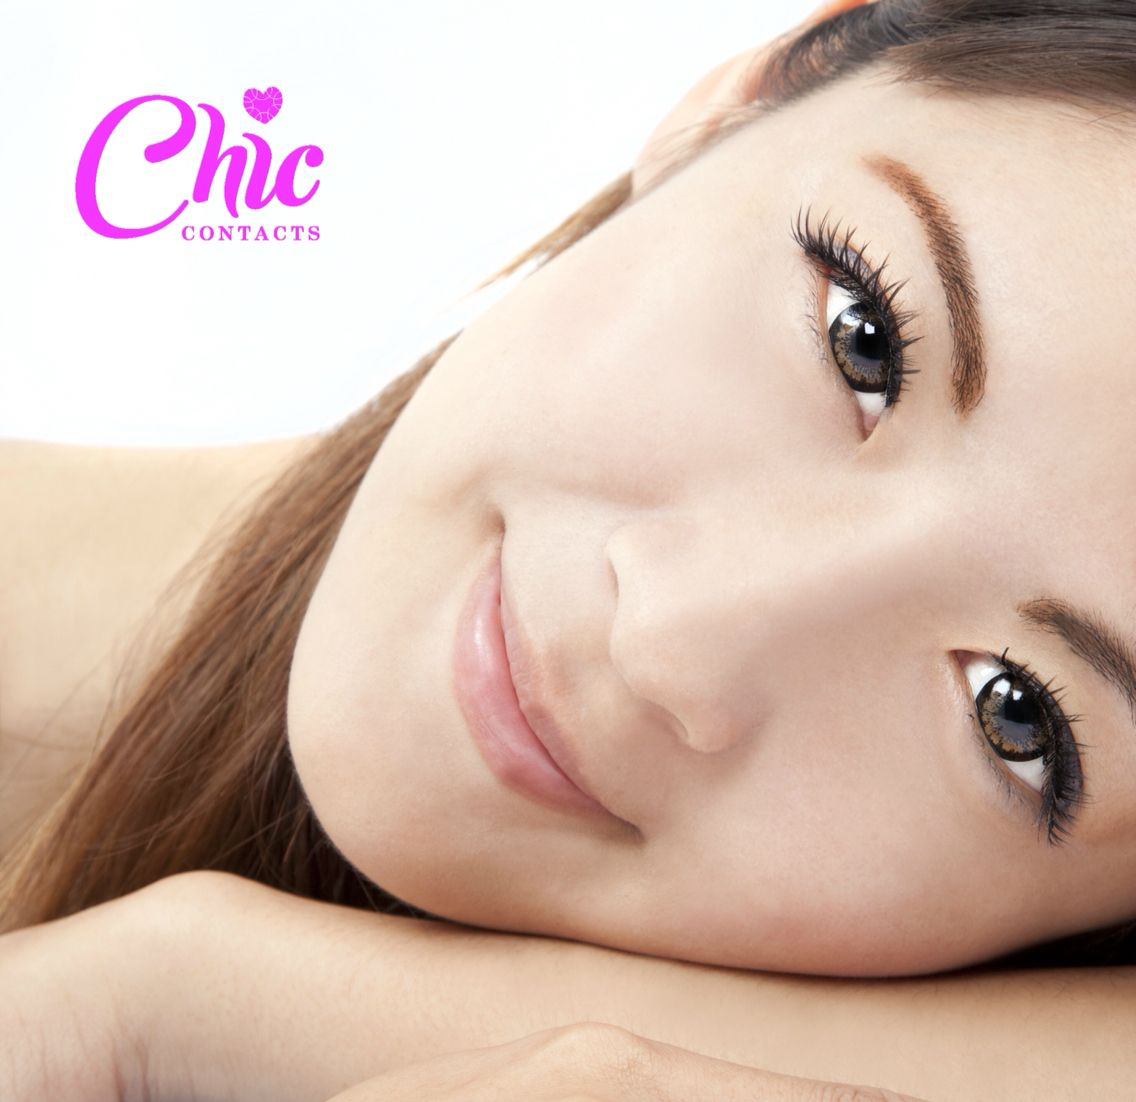 Contact Lenses Will Make Your Eyes Pop Check Out Our Webstore Abd Shop Affordable